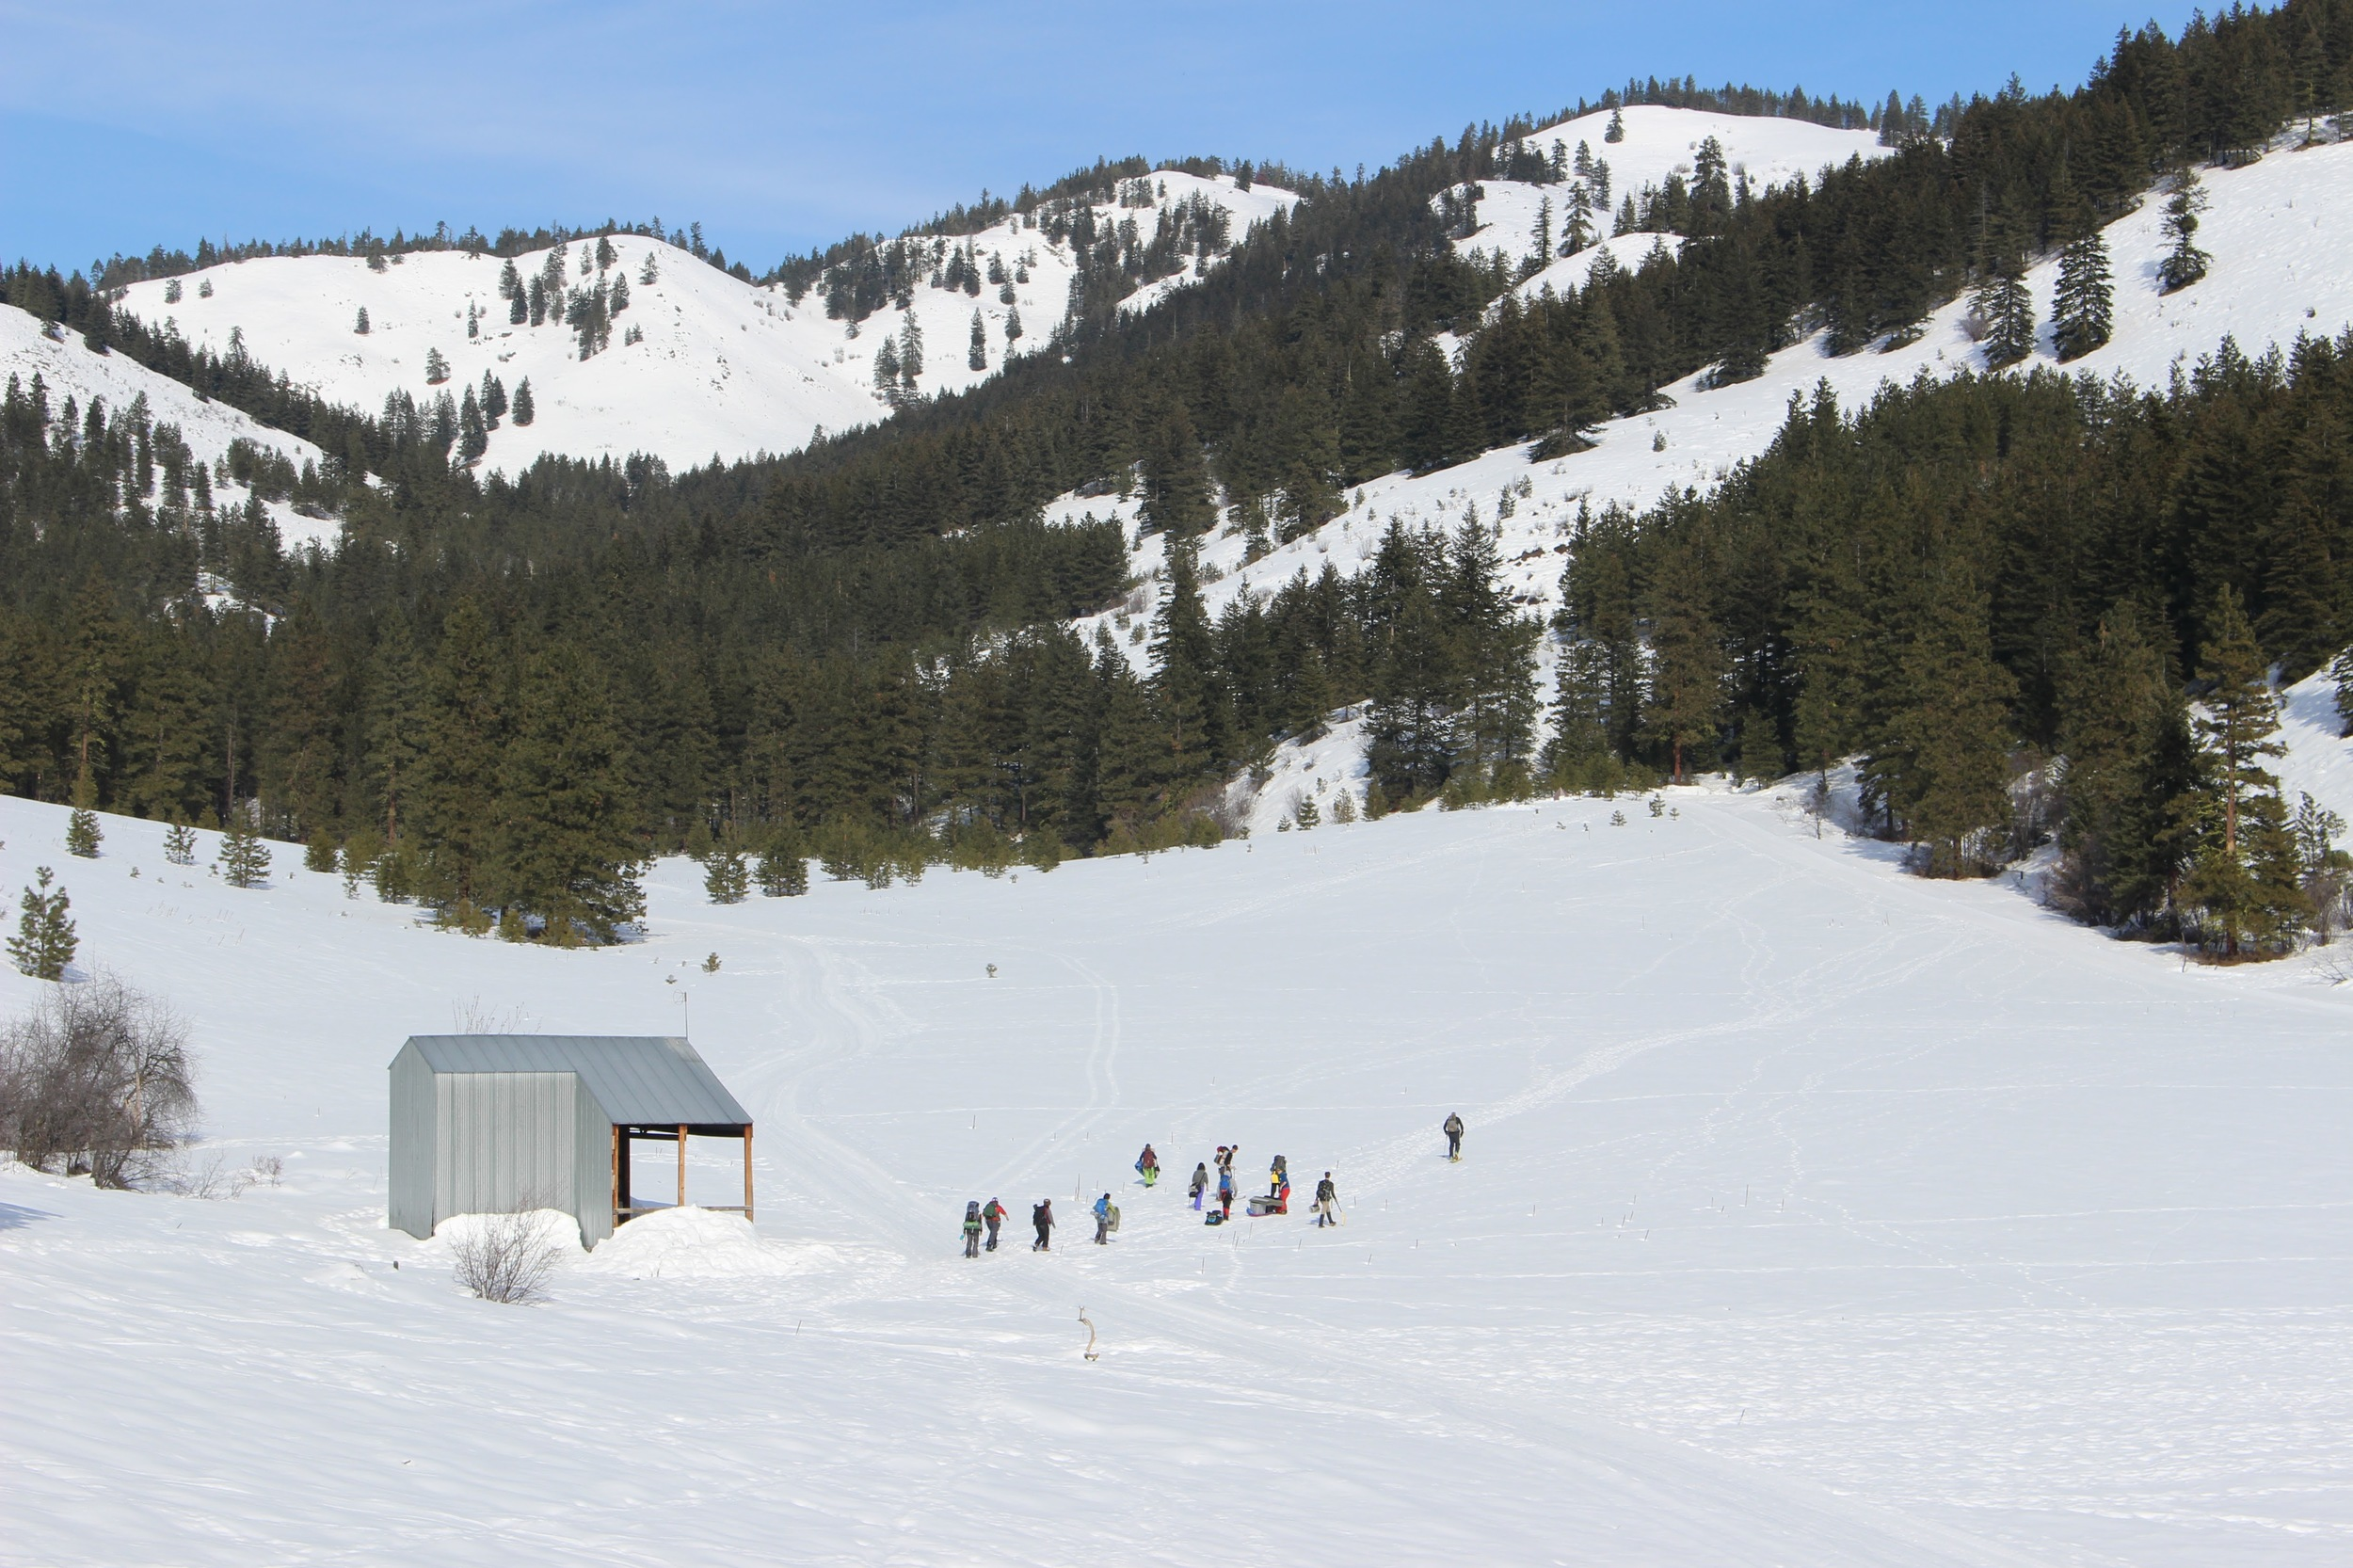 200 yard trek to snow shelters. Photo courtesy of Aly Gourd.